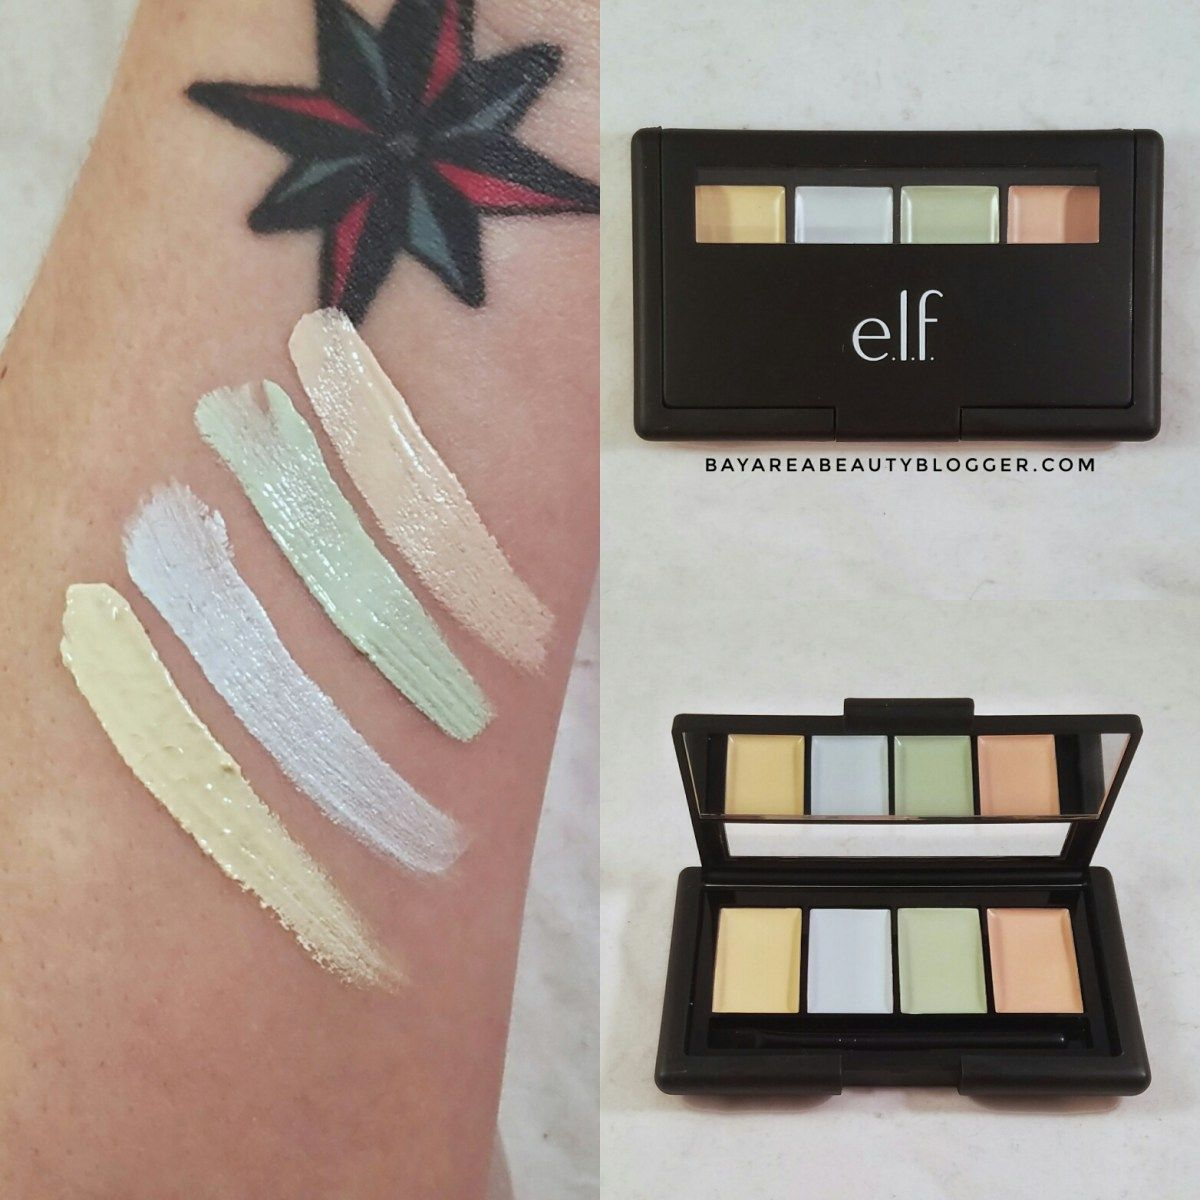 e.l.f. Corrective Concealer Palette Review and Swatches